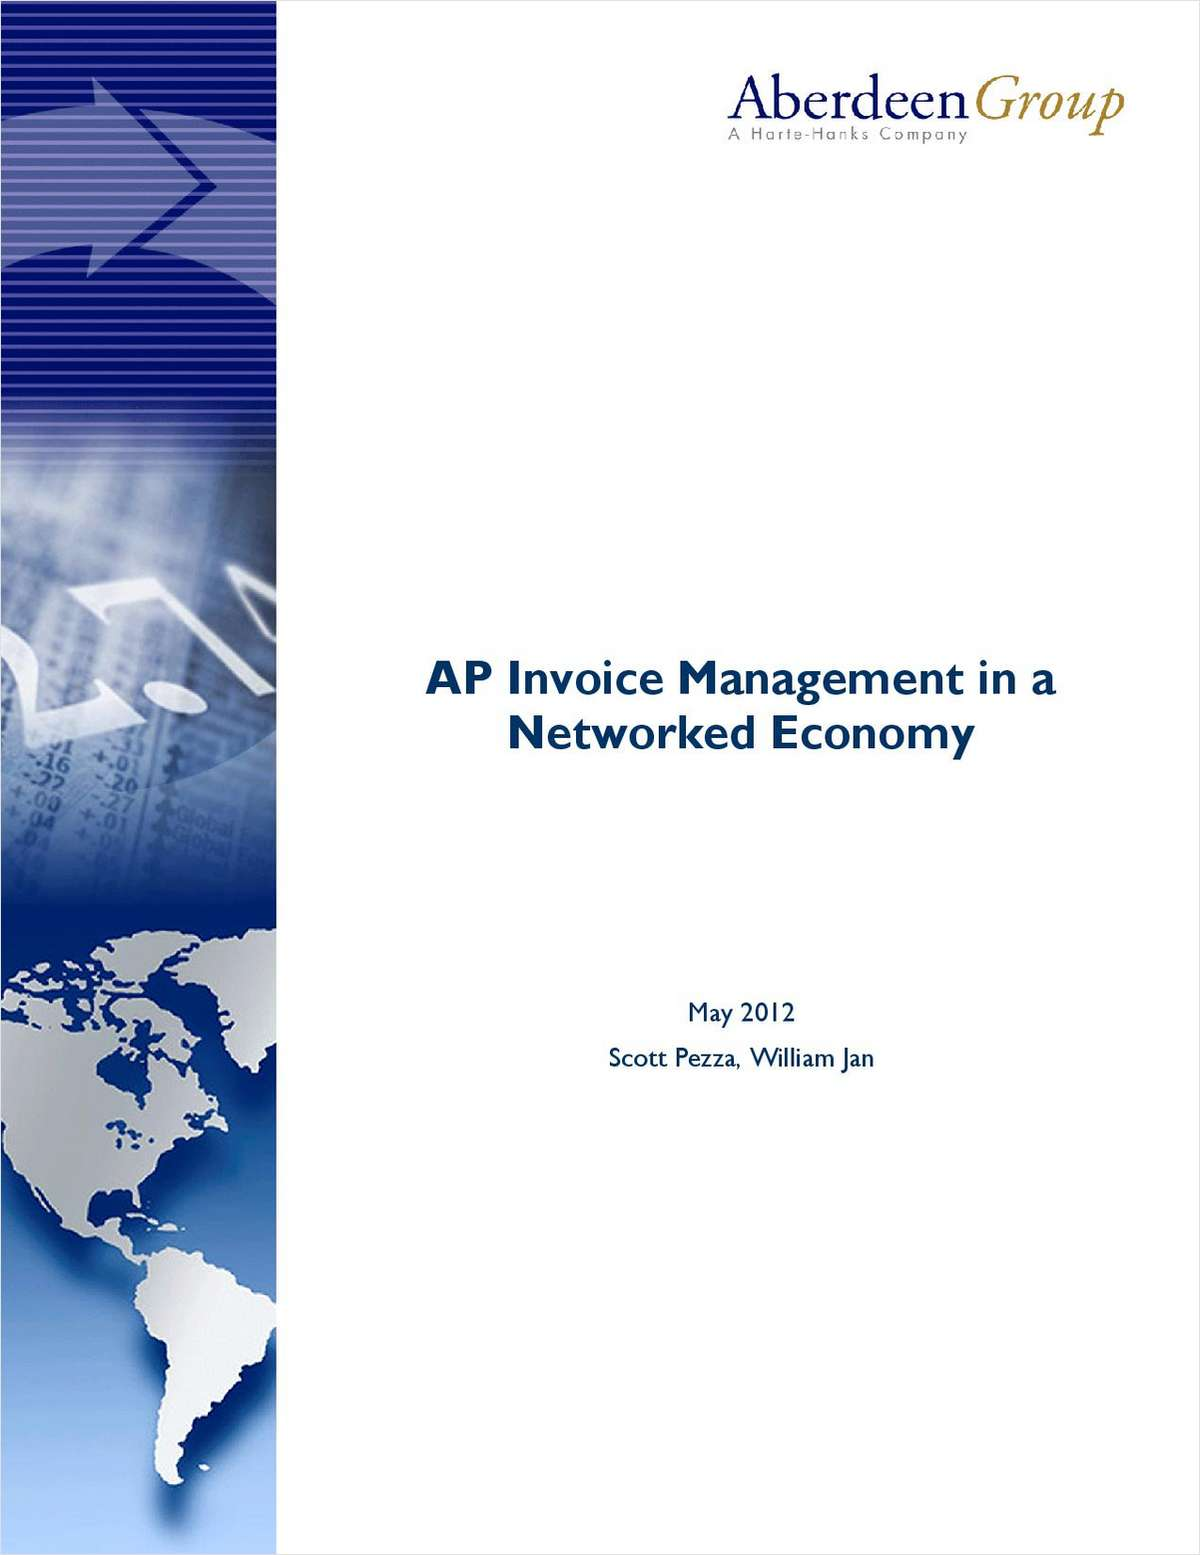 AP Invoice Management in a Networked Economy